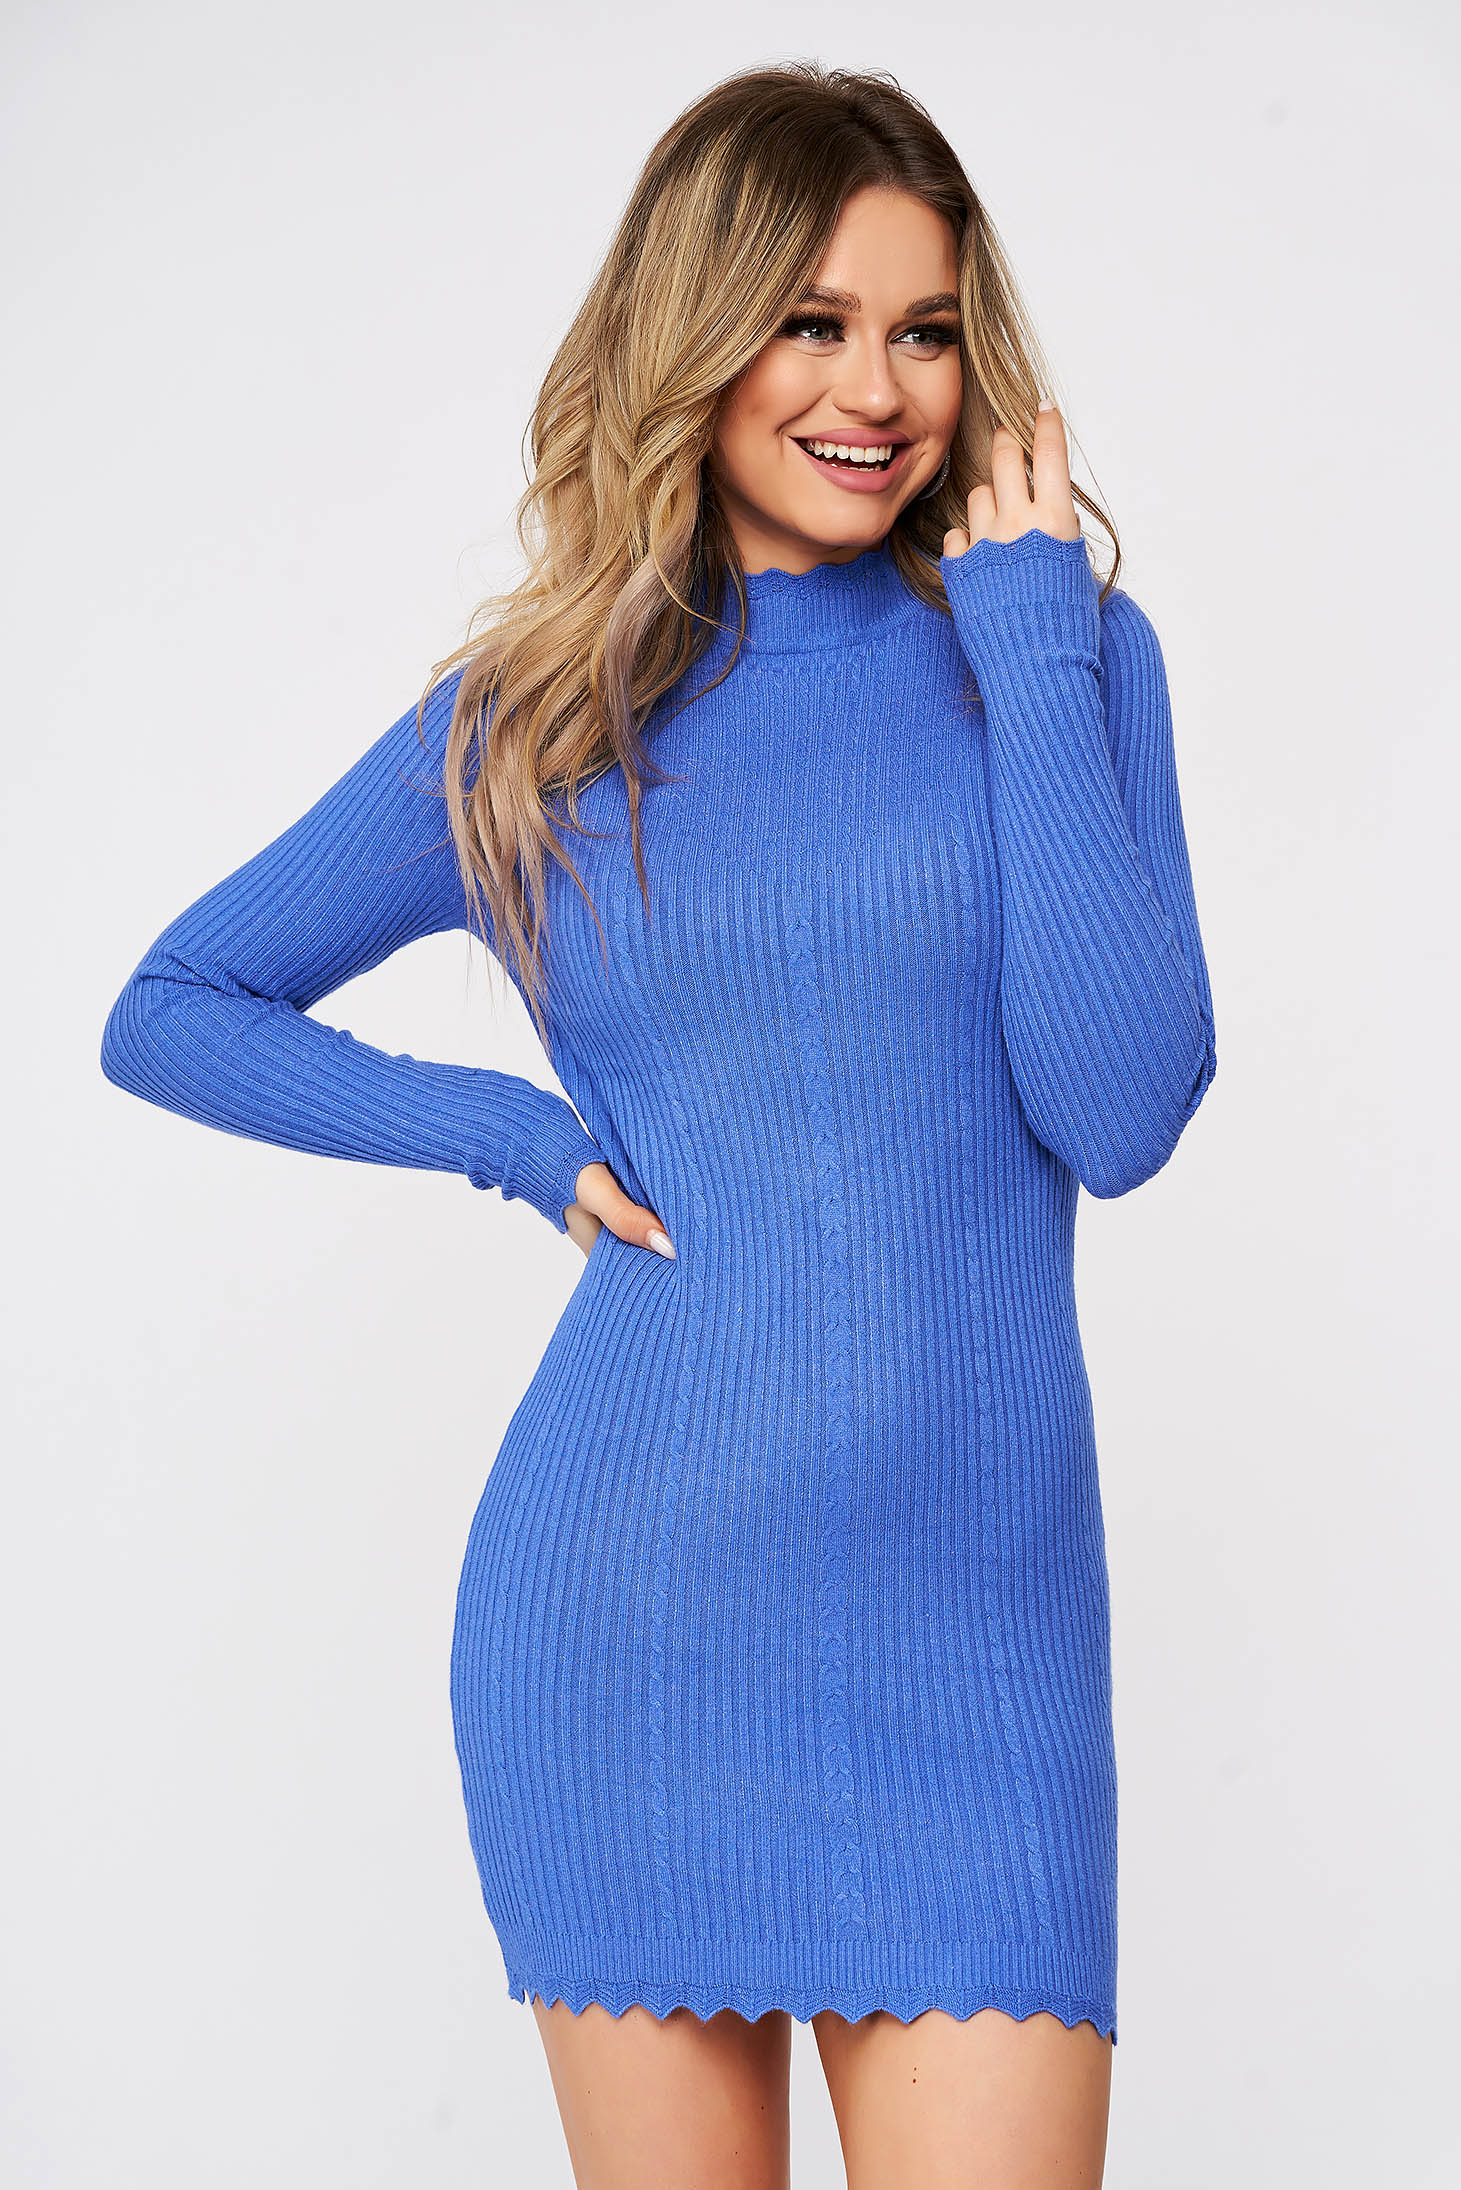 Blue dress soft flat seam from elastic and fine fabric from striped fabric raised seams knitted